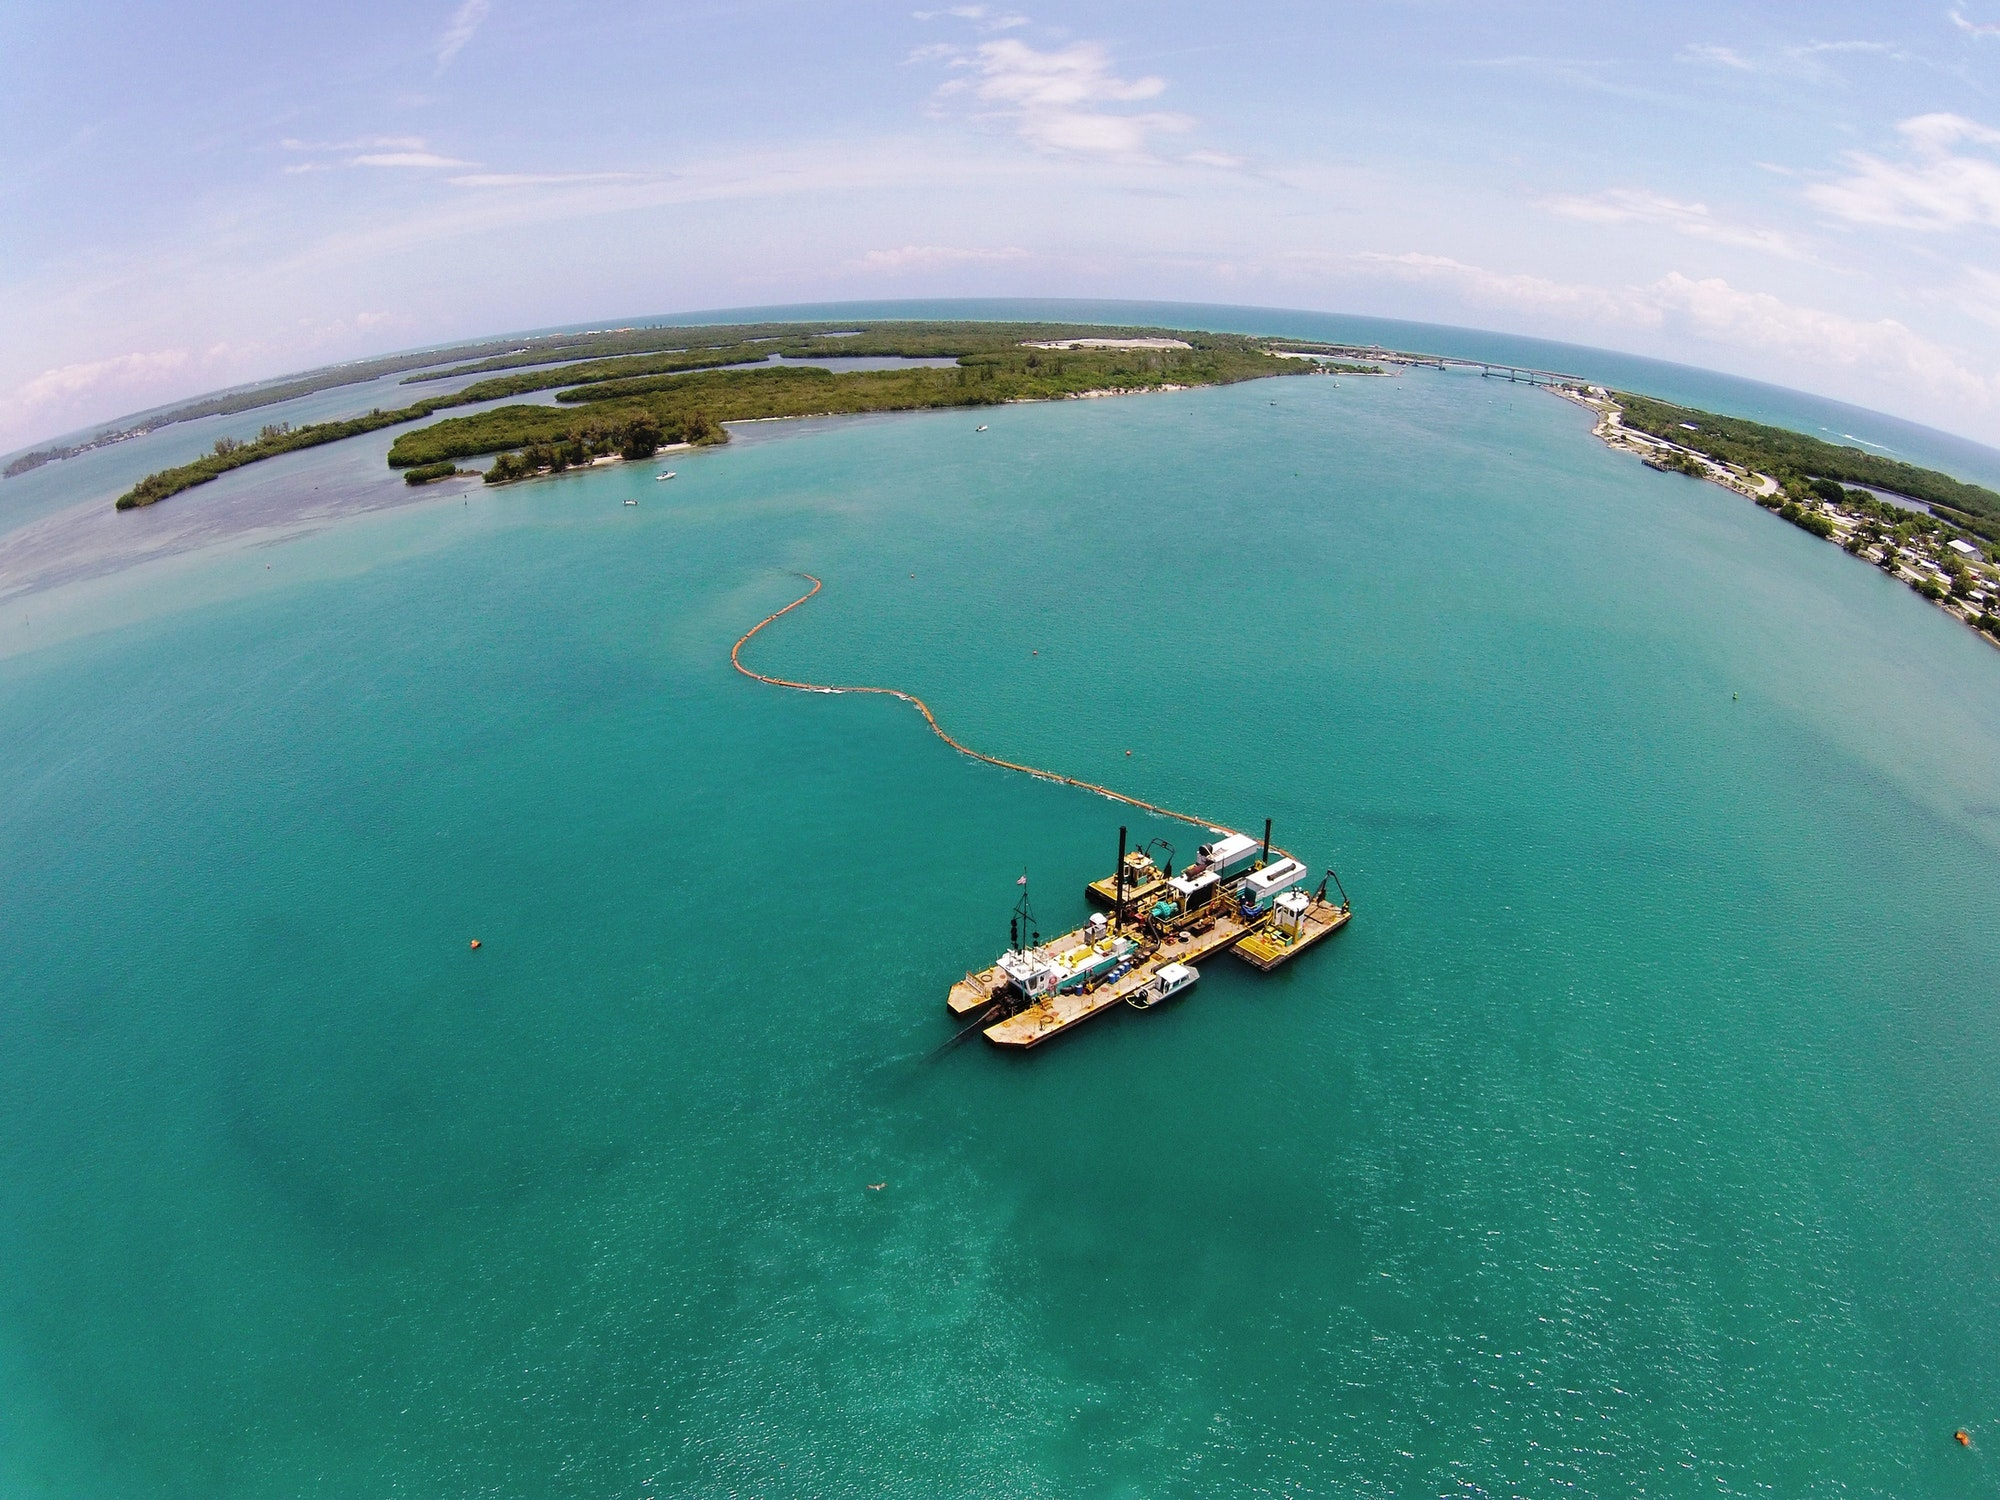 aerial view of dredge floating over inlet channel